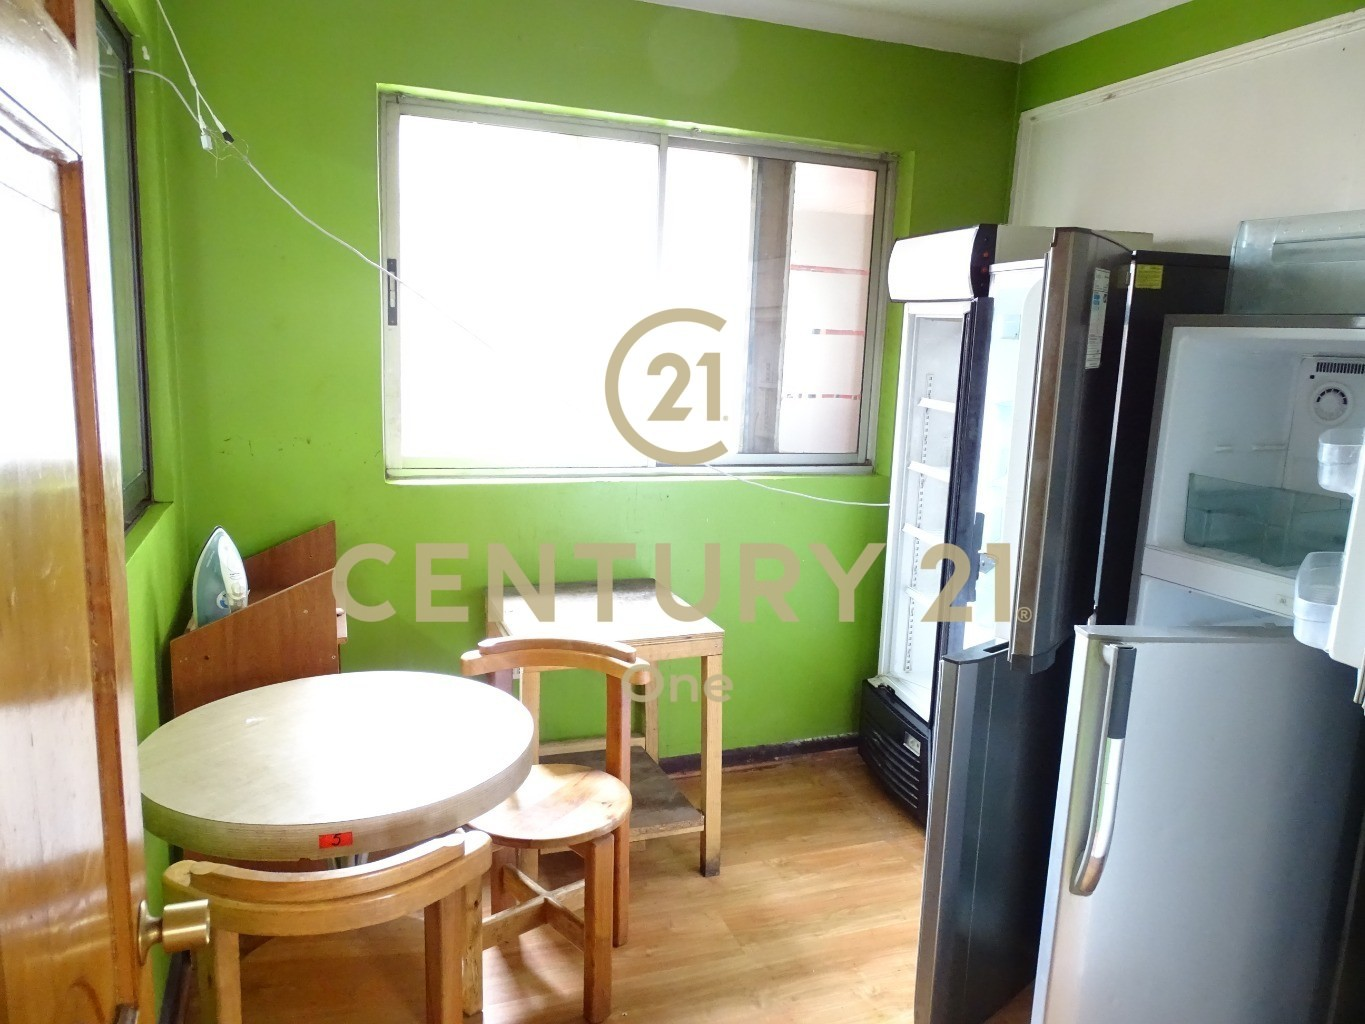 Local comercial | Barros Arana